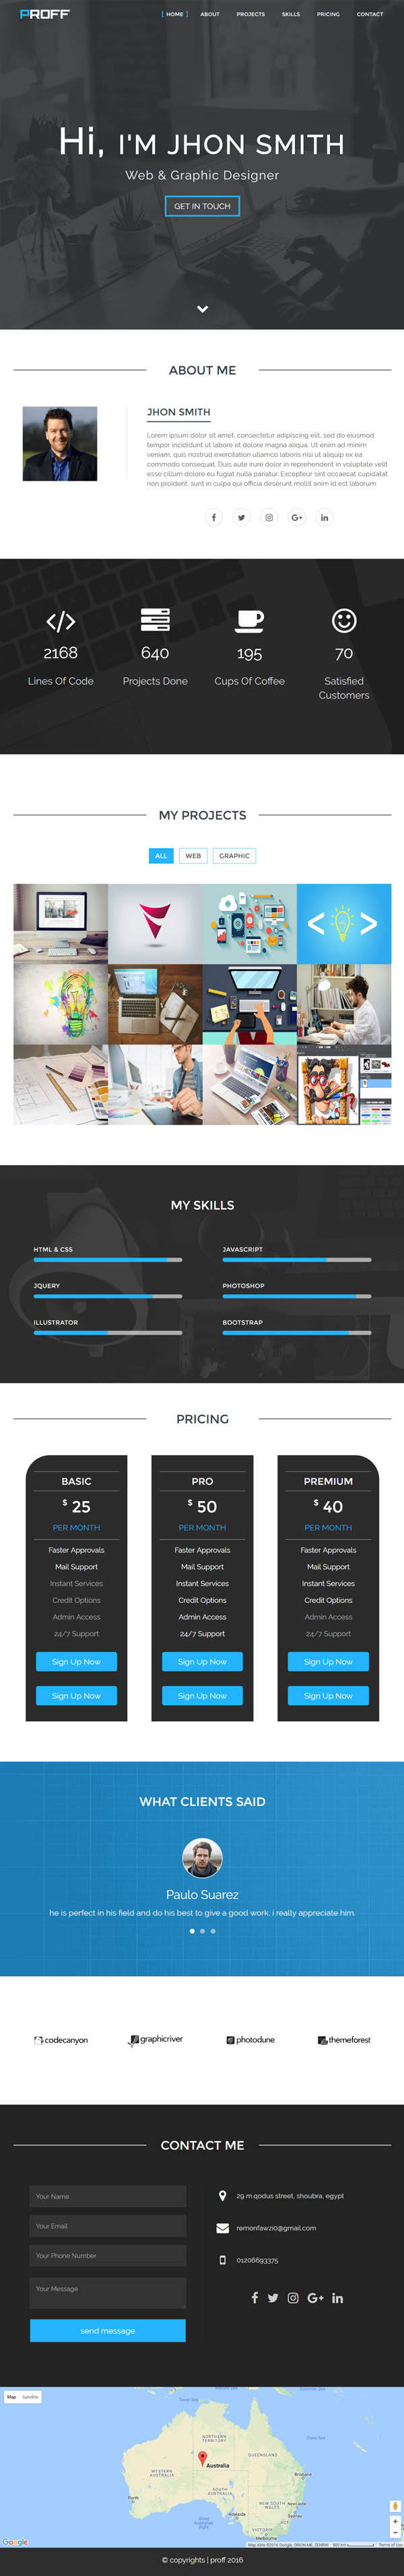 HTML5 Website Templates (PSD & HTML) | Design | Graphic Design Junction